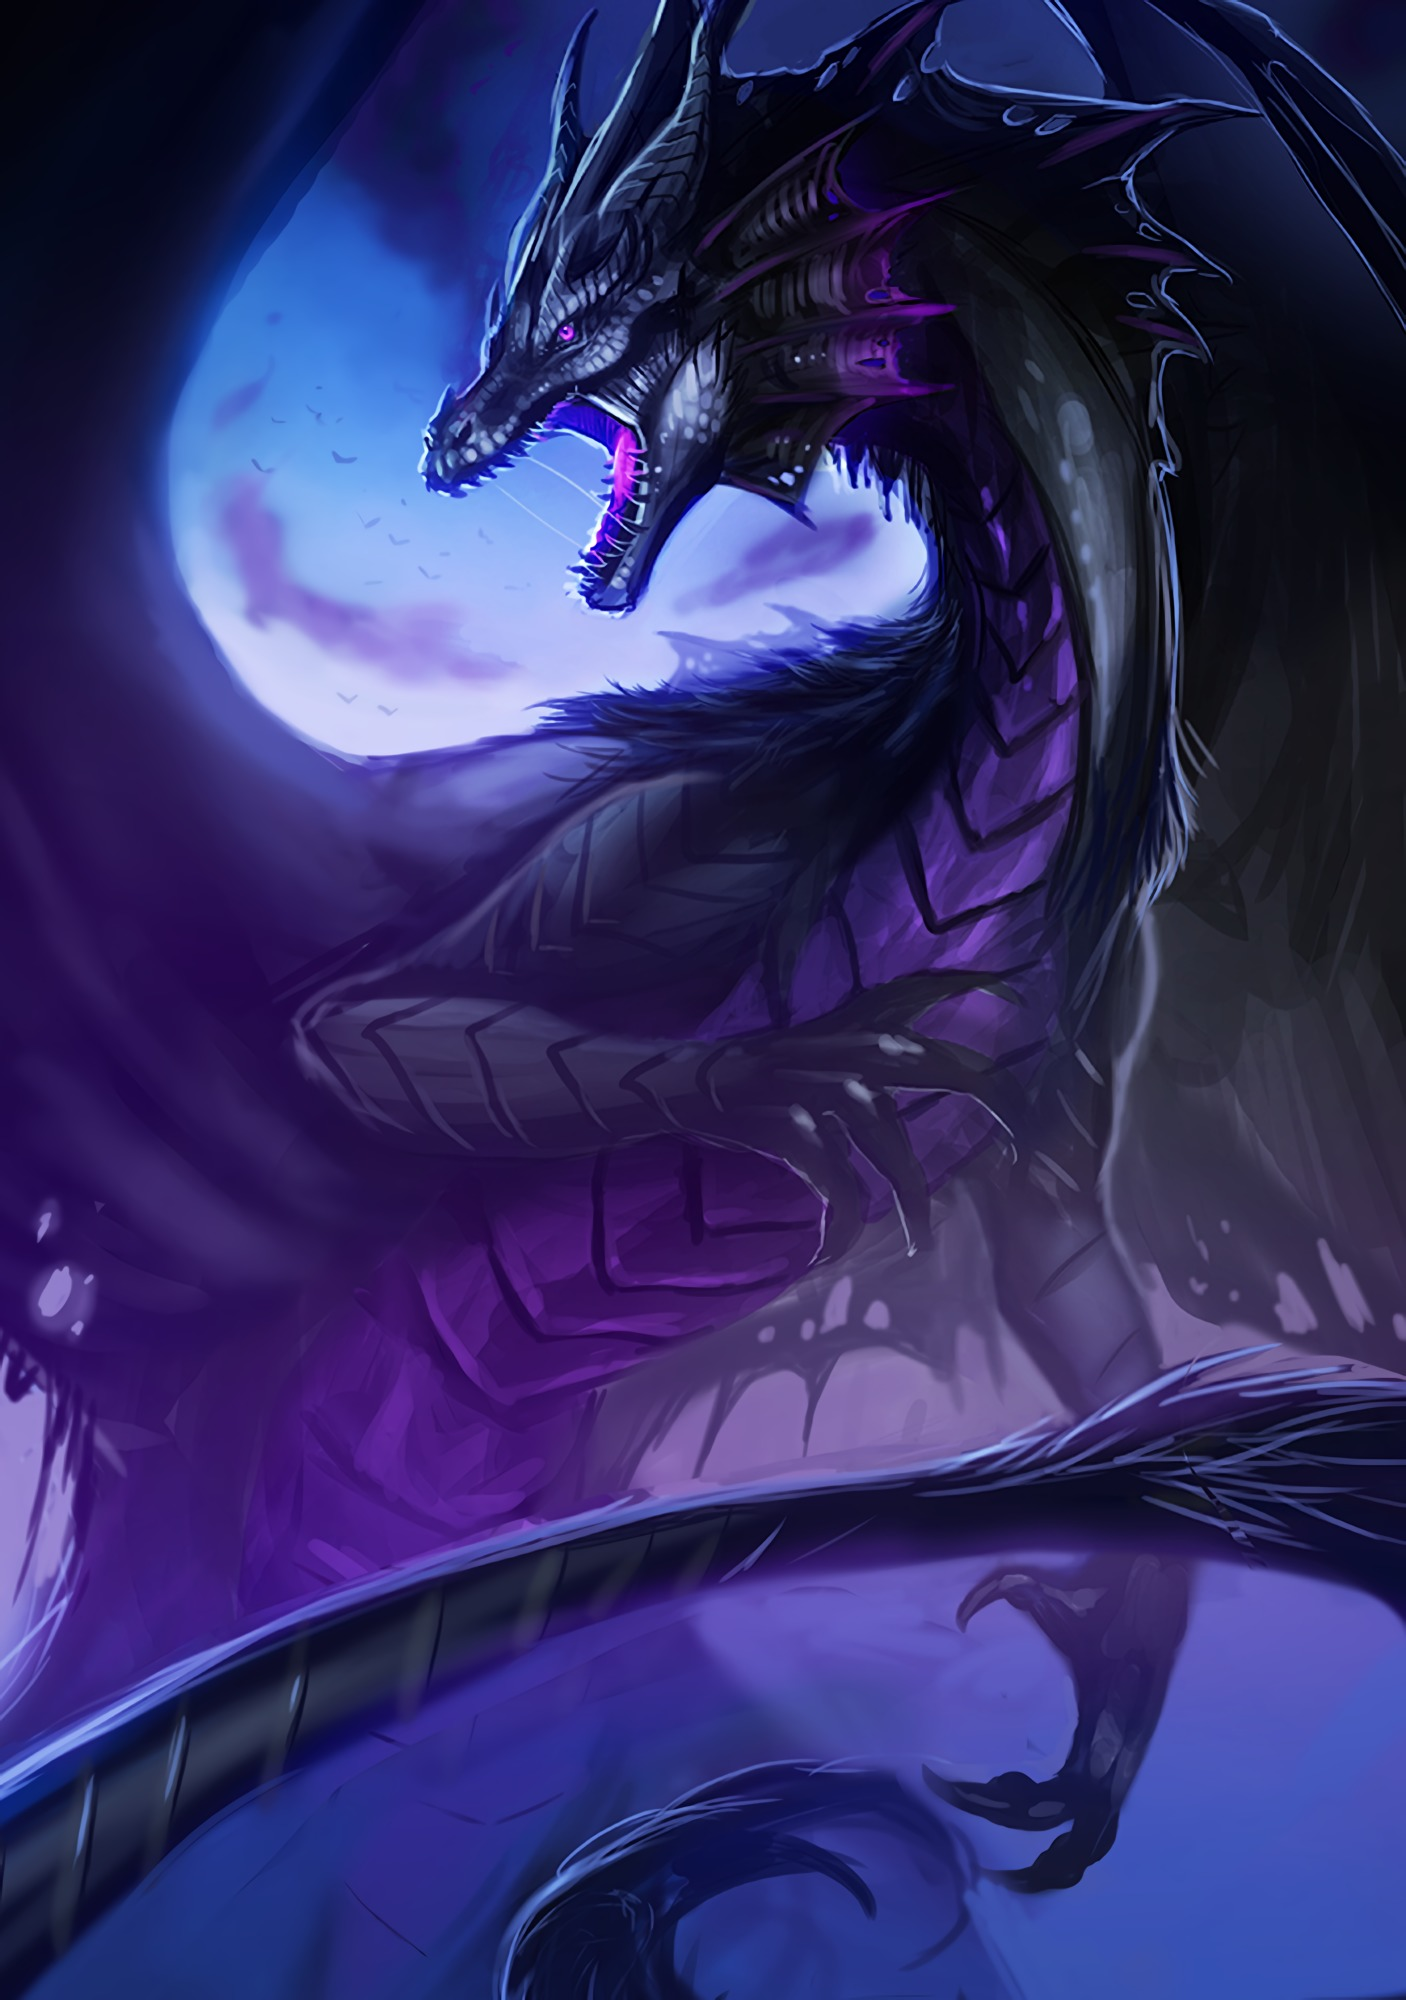 107937 Screensavers and Wallpapers Fiction for phone. Download Art, Grin, Dragon, Being, Creature, Fiction, That's Incredible pictures for free